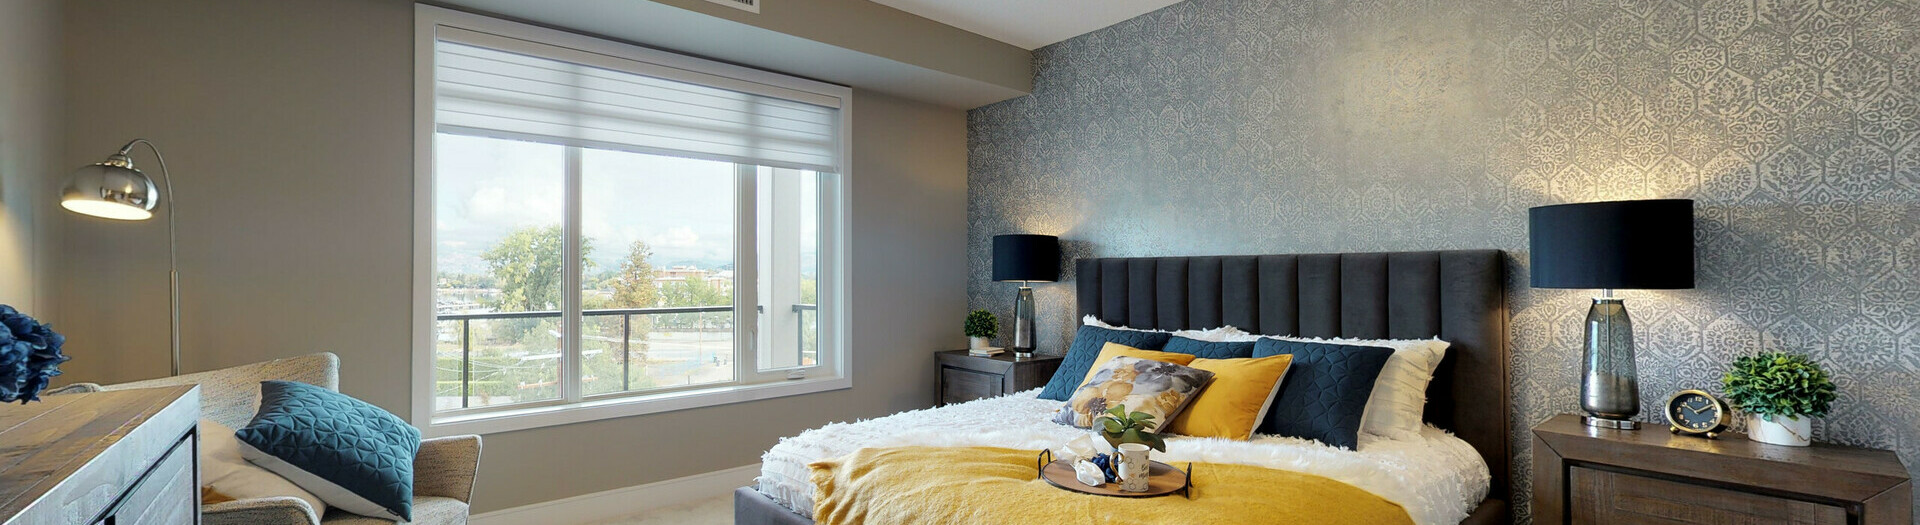 Master Bedroom in the Zephyr showsuite in the Essence Condo building in Mission Creek, Kelowna, British Columbia.